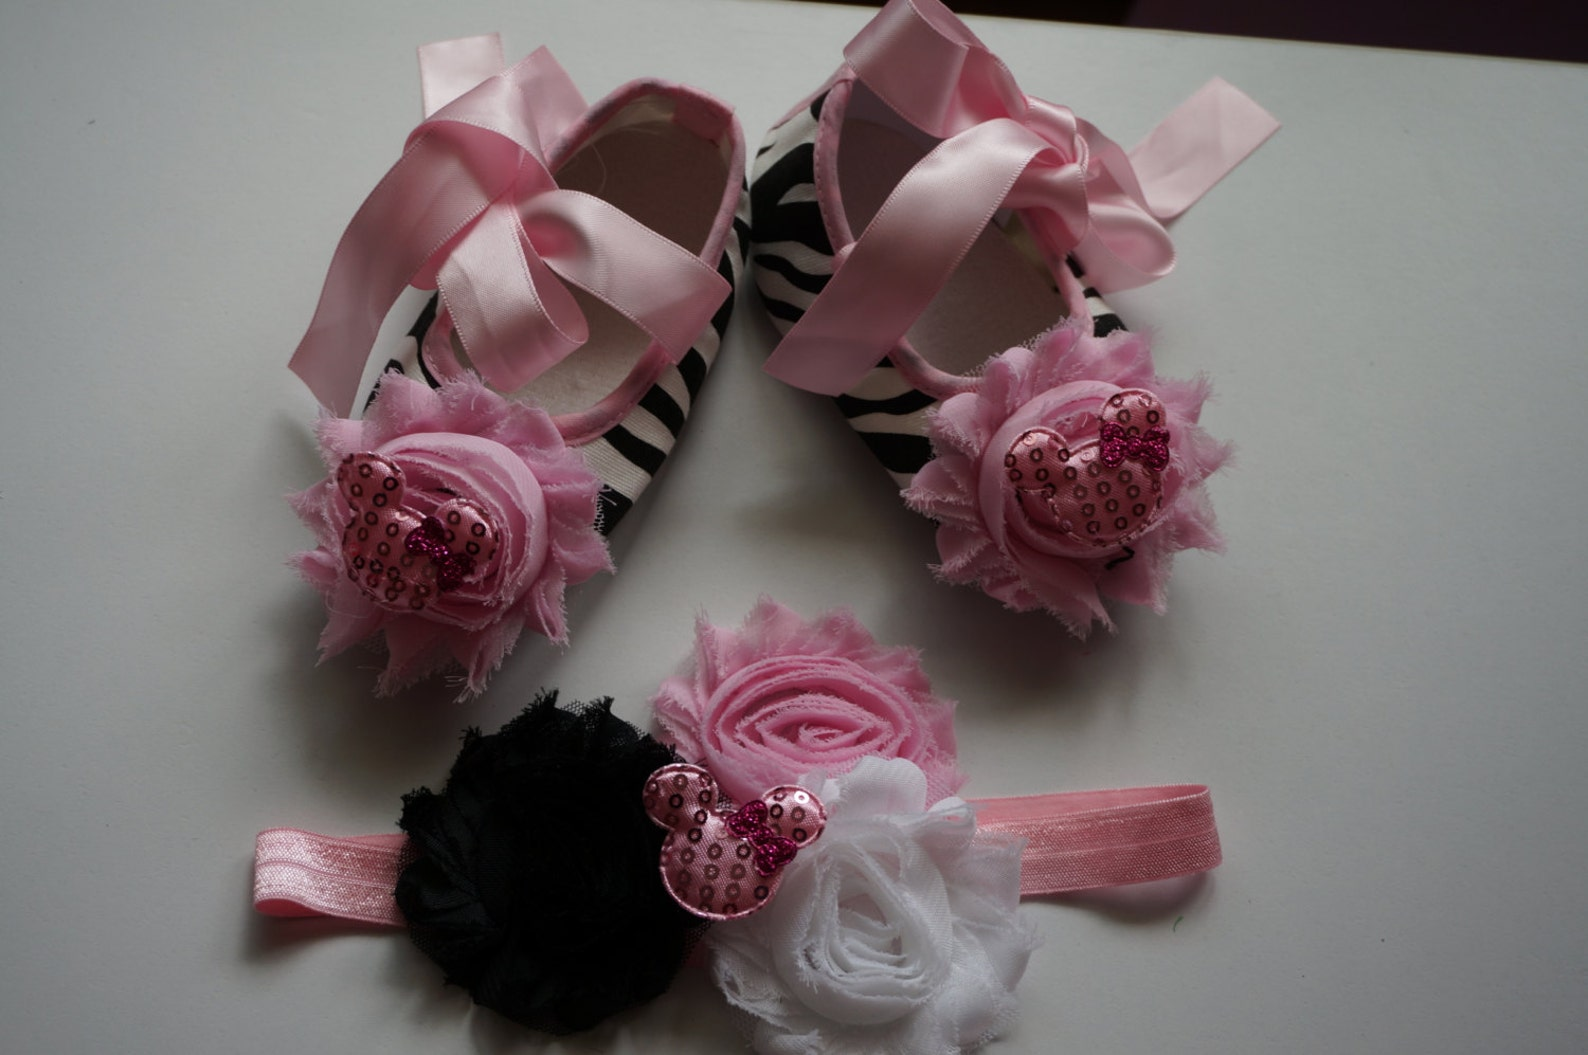 baby girl zebra shoes and headband set,baby girls shoes,disney shoes, zebra print ballet baby shoes, crib shoes and headband.